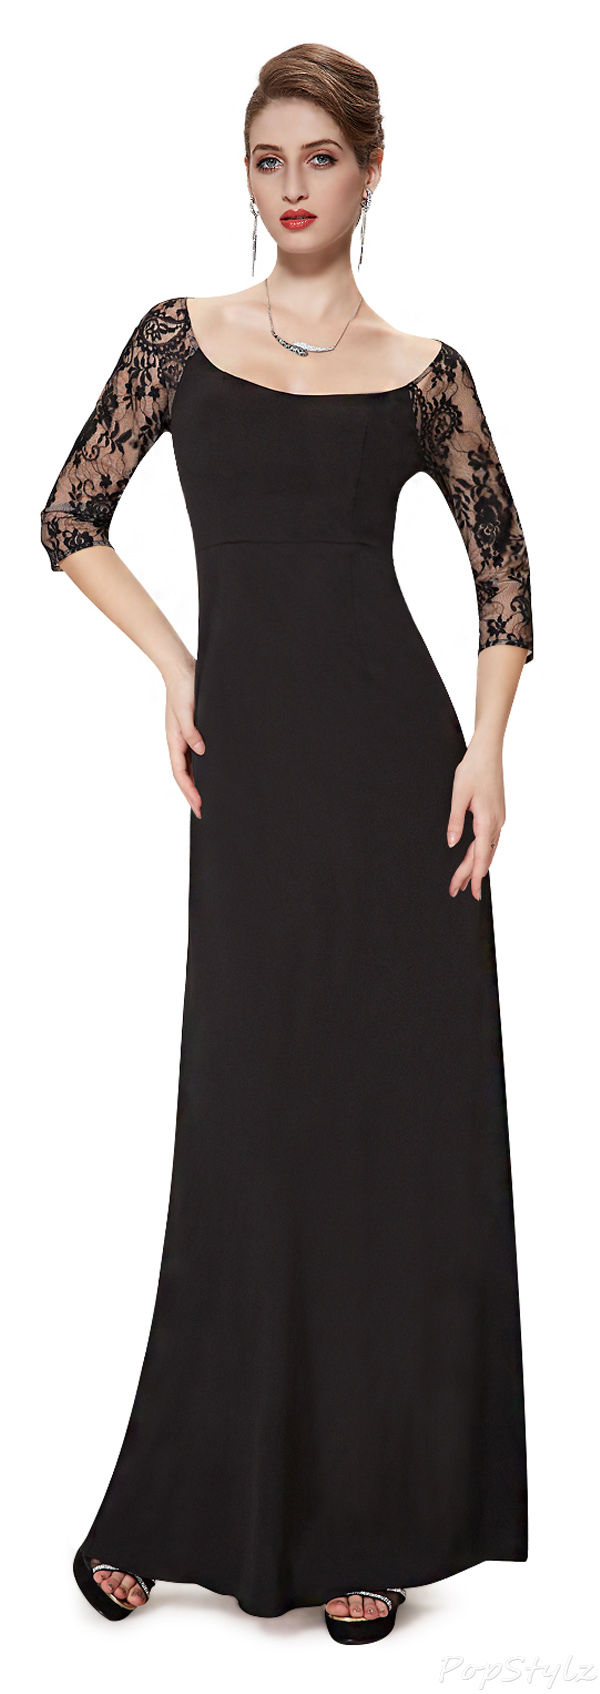 Galerry lace dress with long sleeves